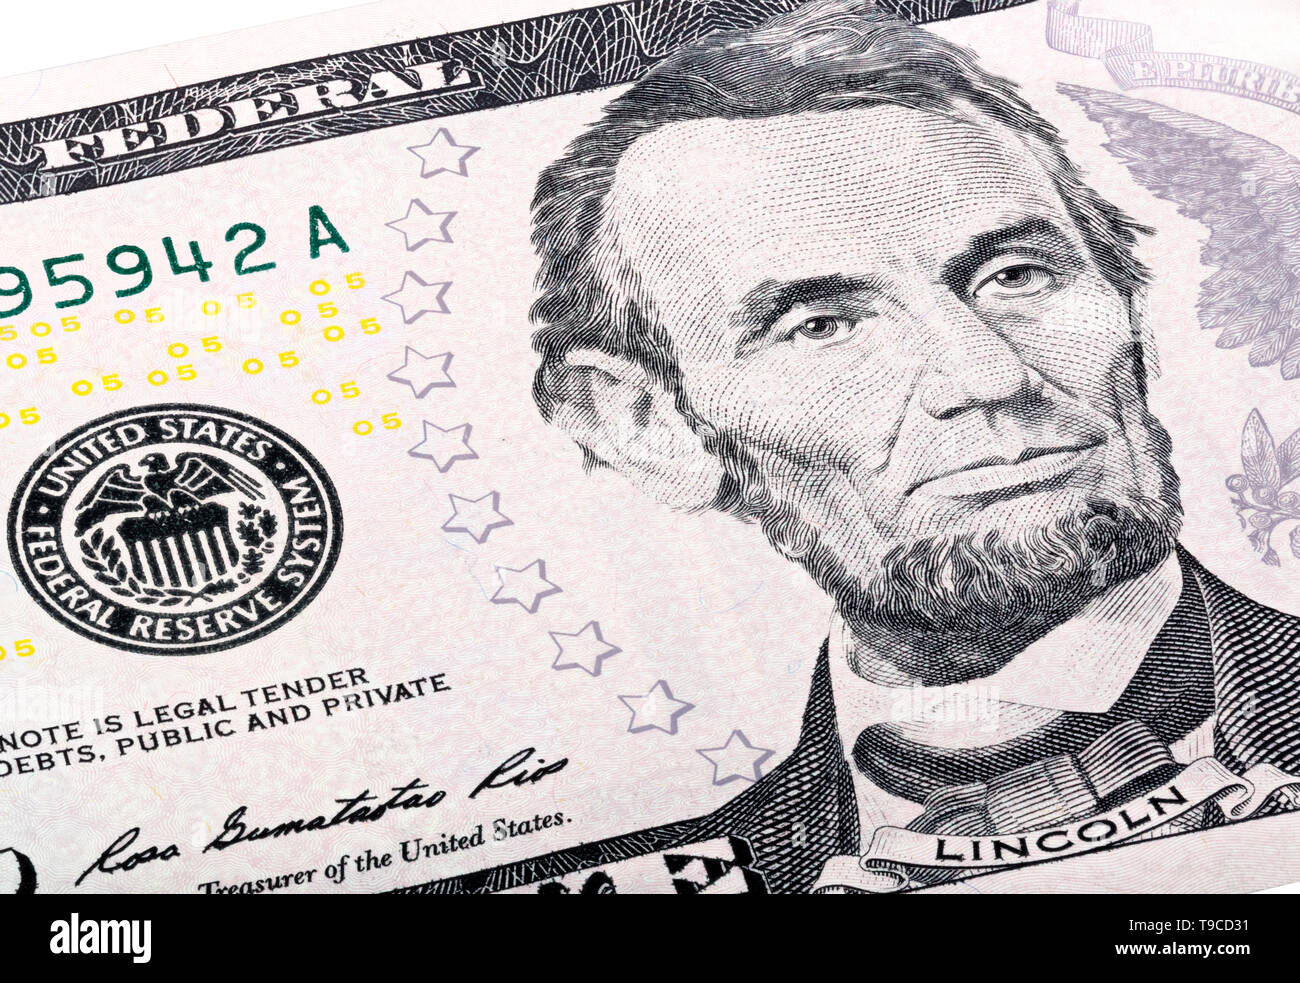 Close-up portrait of Abraham Lincoln end print of Federal Reserve System on five-dollar bill. - Stock Image